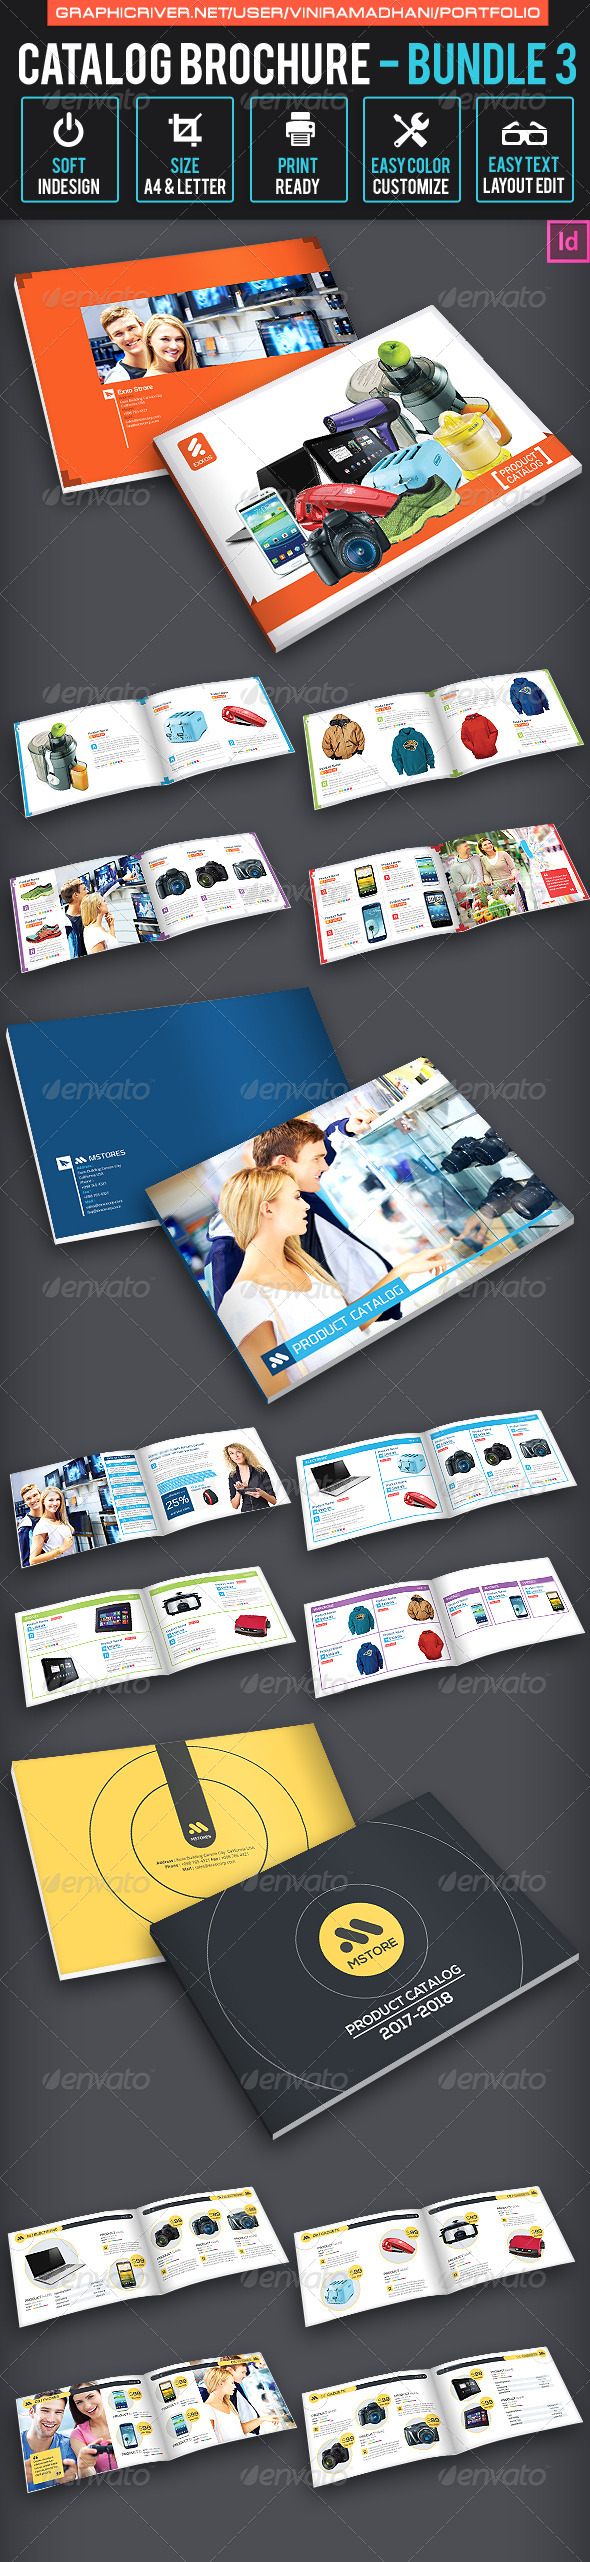 GraphicRiver Catalog Brochure bundle 3 7324620